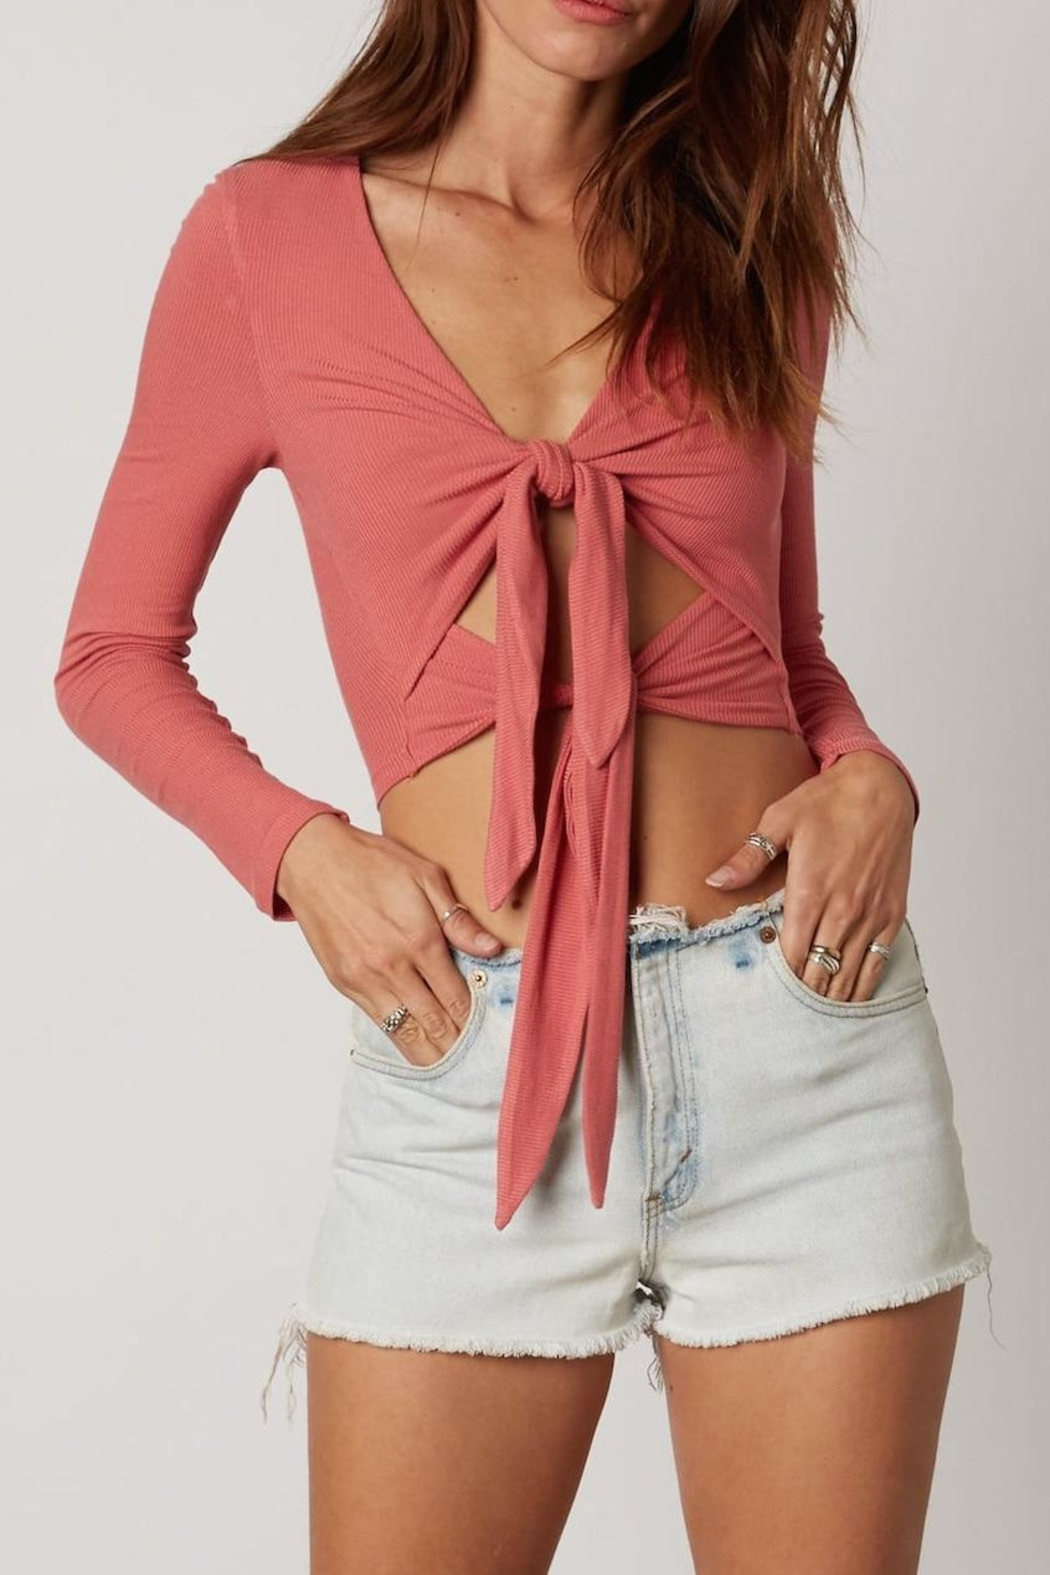 Cotton Candy Double Tie-Front Top - Main Image